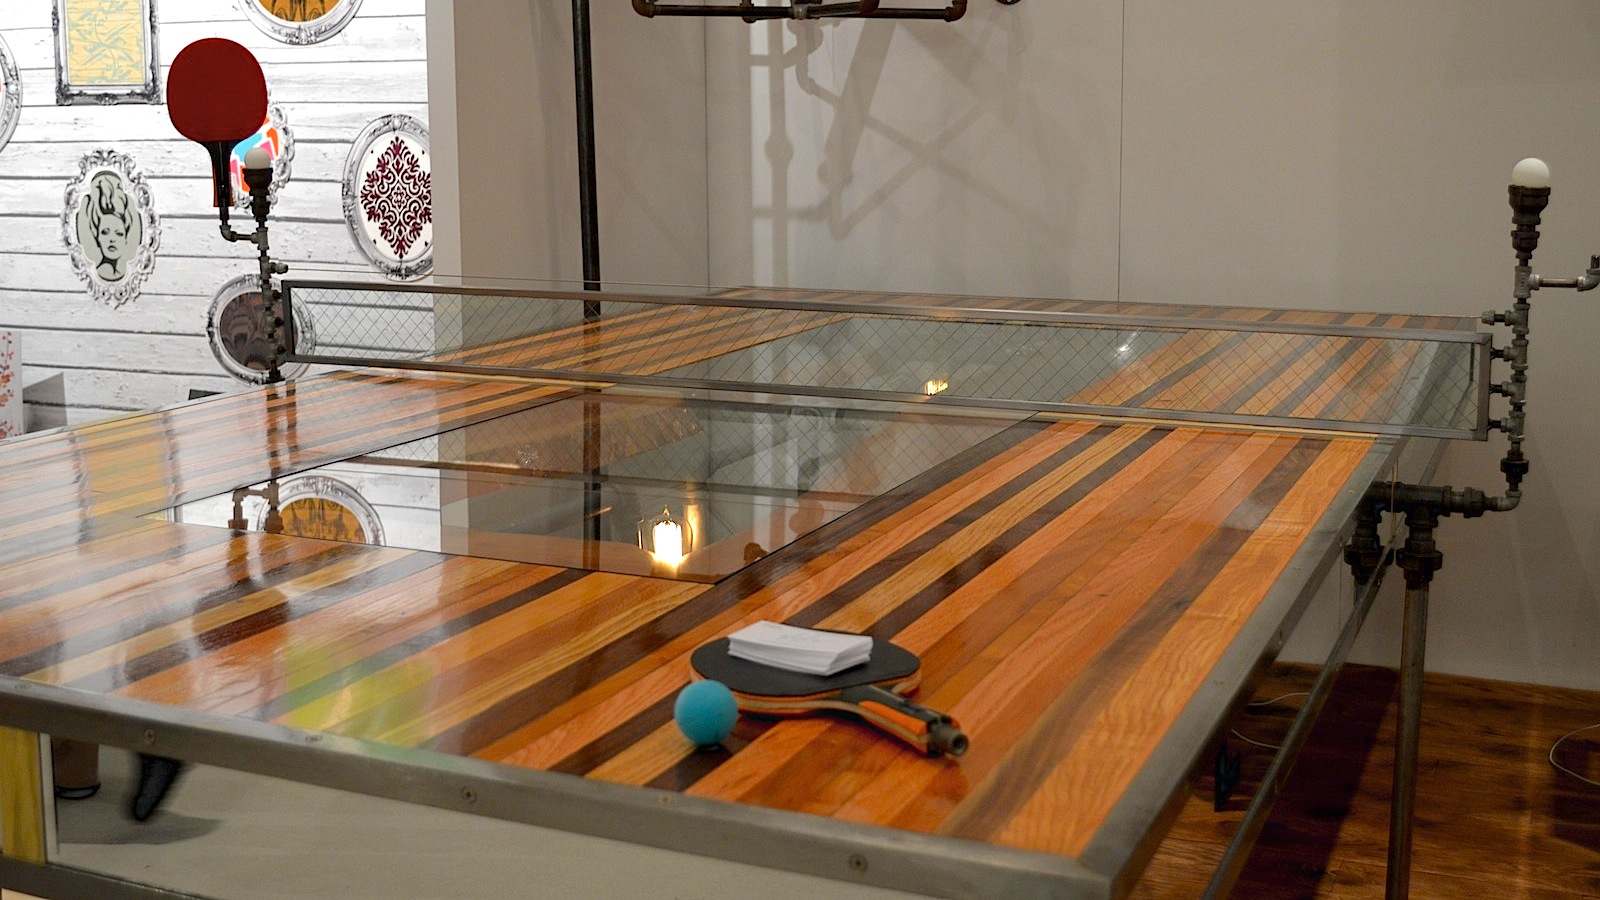 This Crazy Ass Ping Pong Table Took 400 Hours To Build